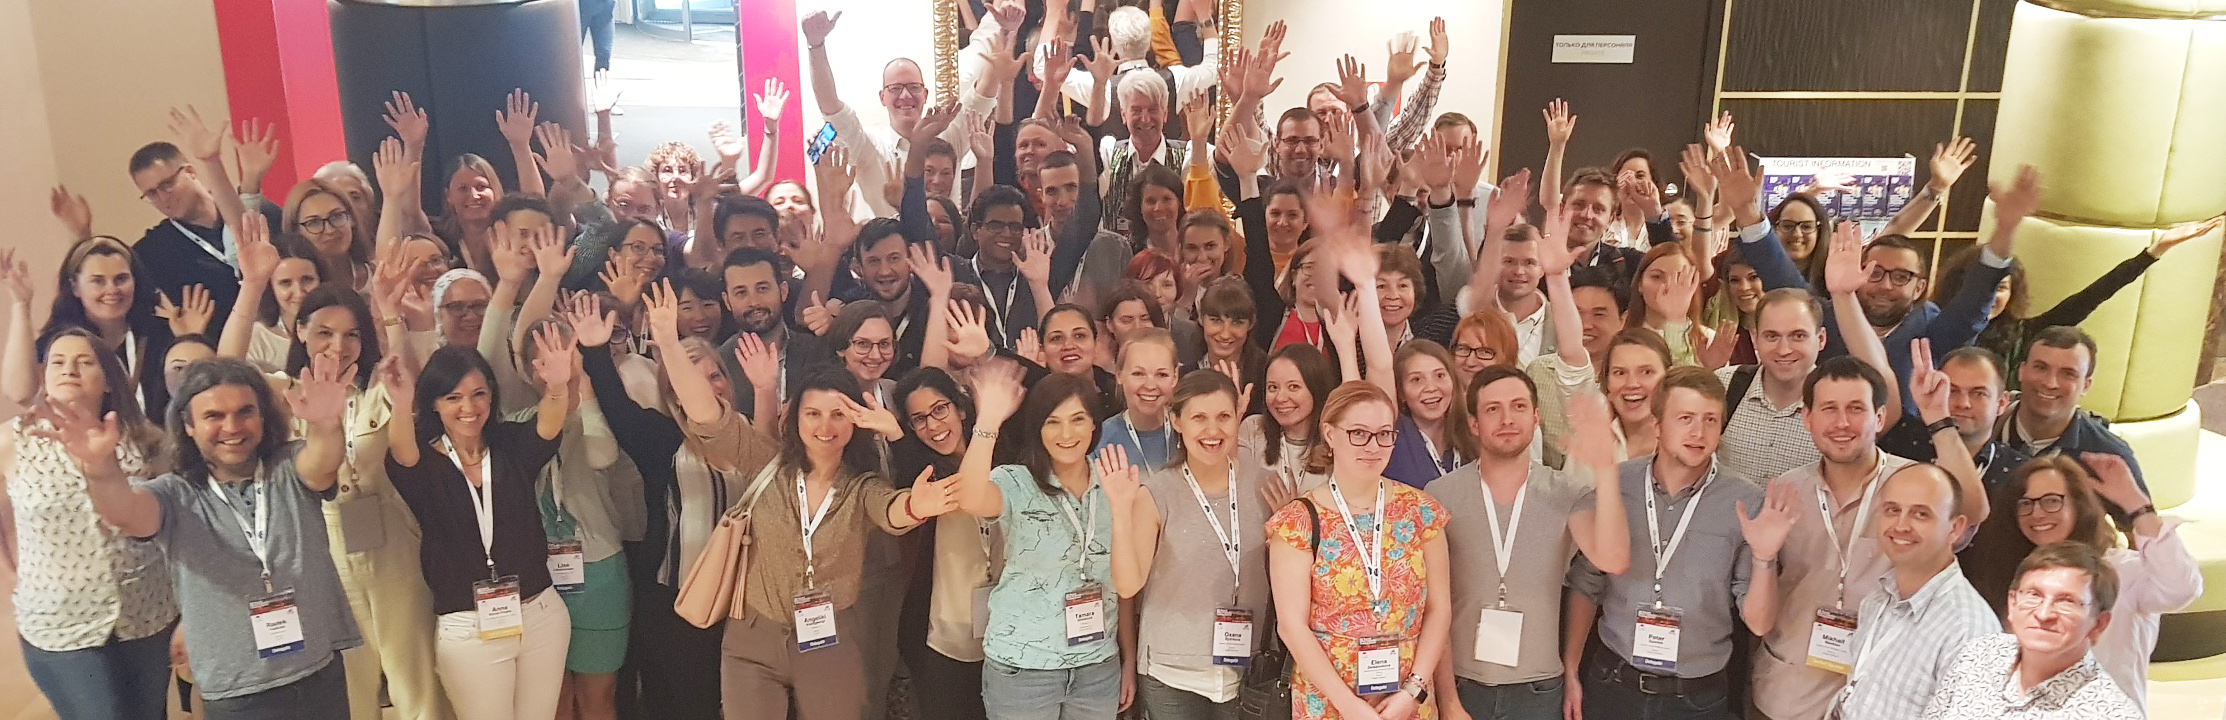 VEPTC2019 HANDS UP cropped